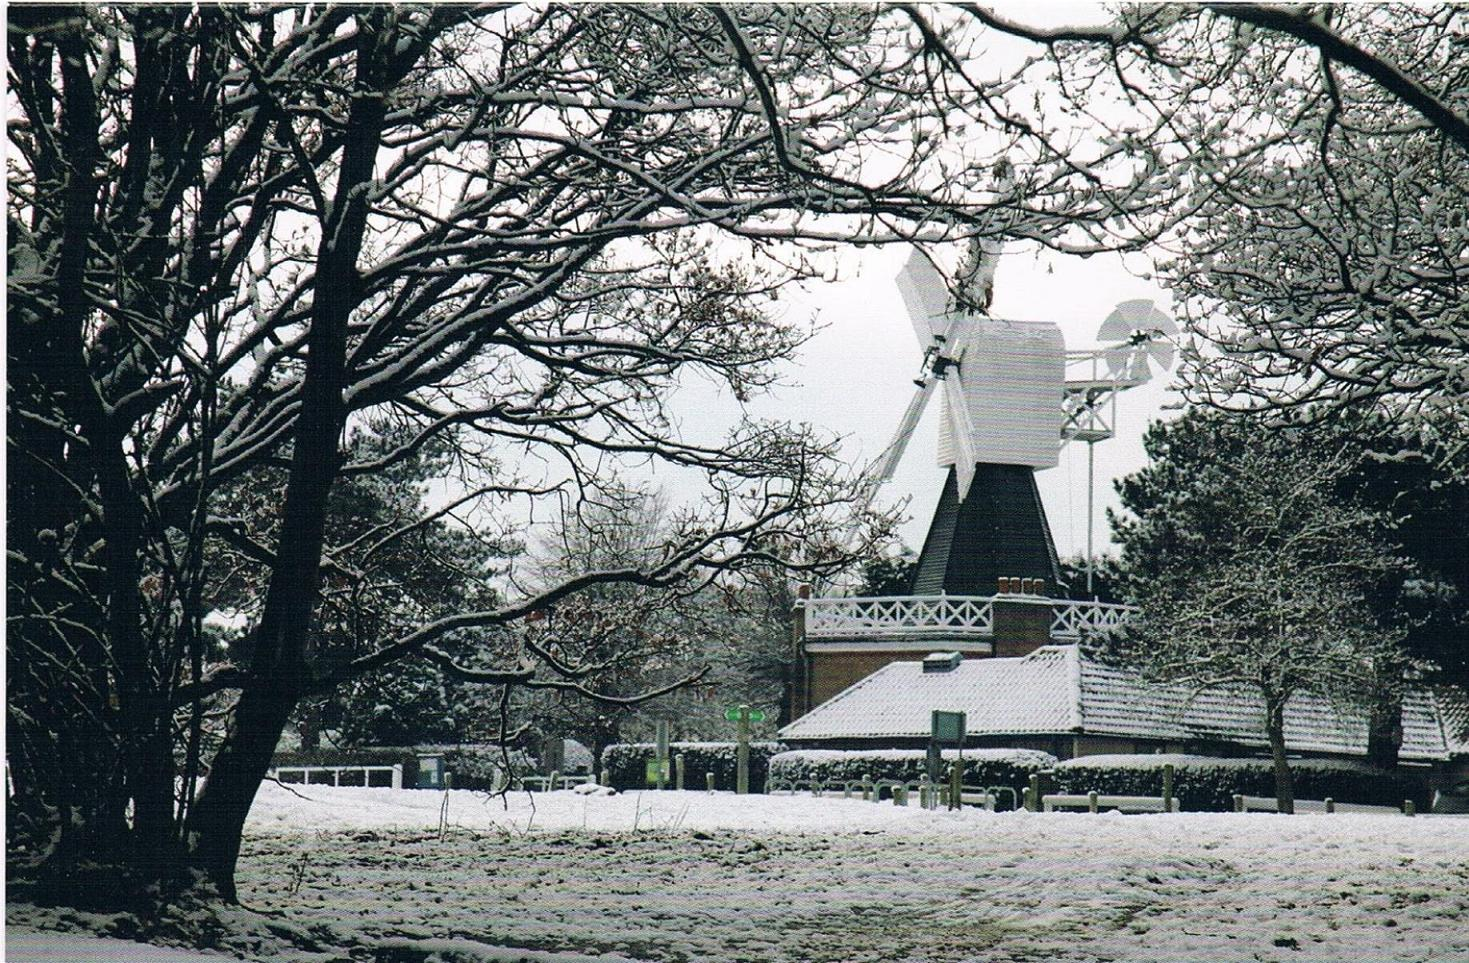 This year's Wimbledon Society Christmas card shows Wimbledon Windmill in the snow last February